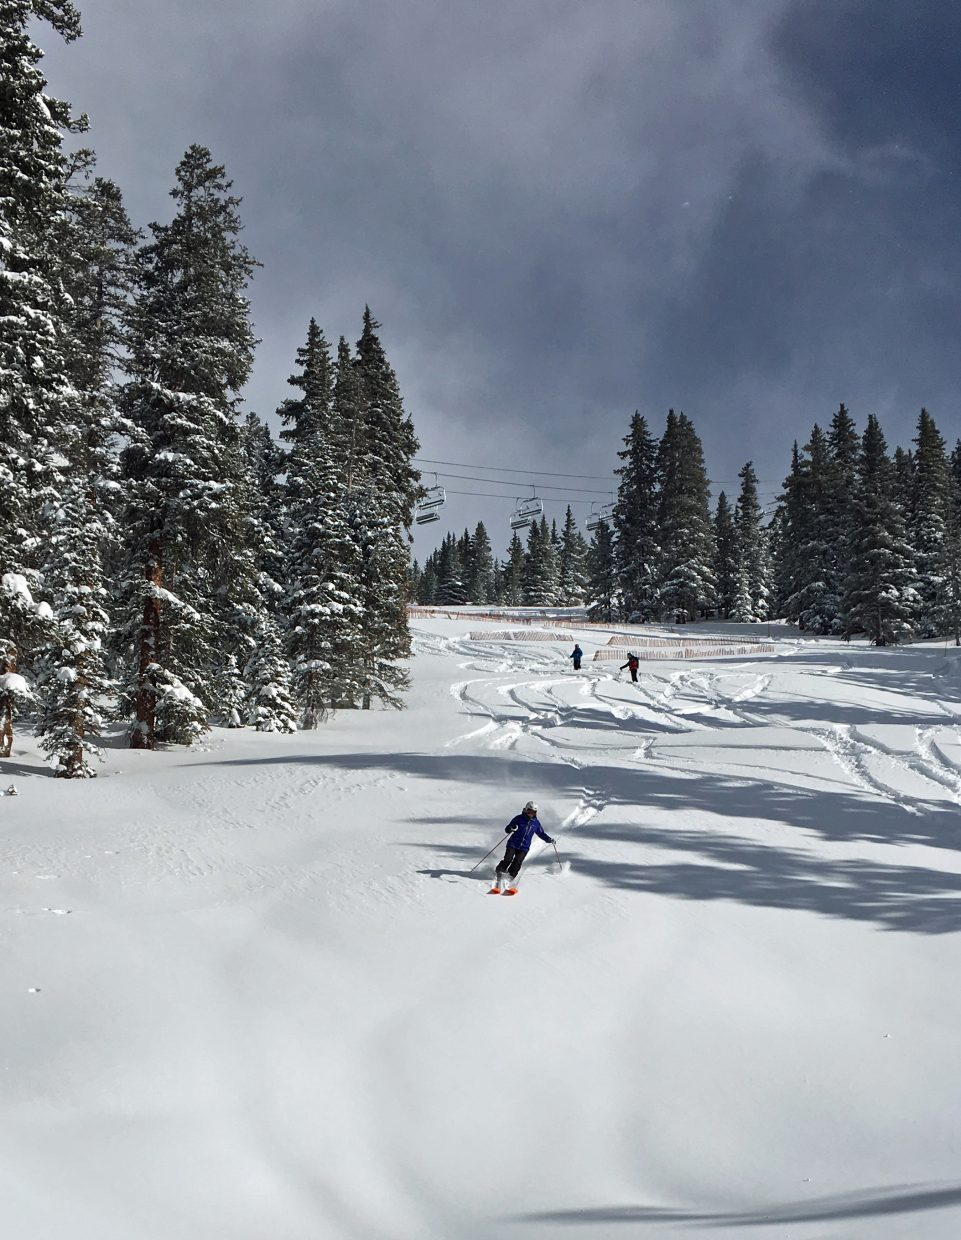 Skiers carve turns in fresh powder in the terrain expansion at Arapahoe Basin Ski Area on Sunday, a day before A-Basin is scheduled to open lift-service in its newest terrain expansion on Monday.